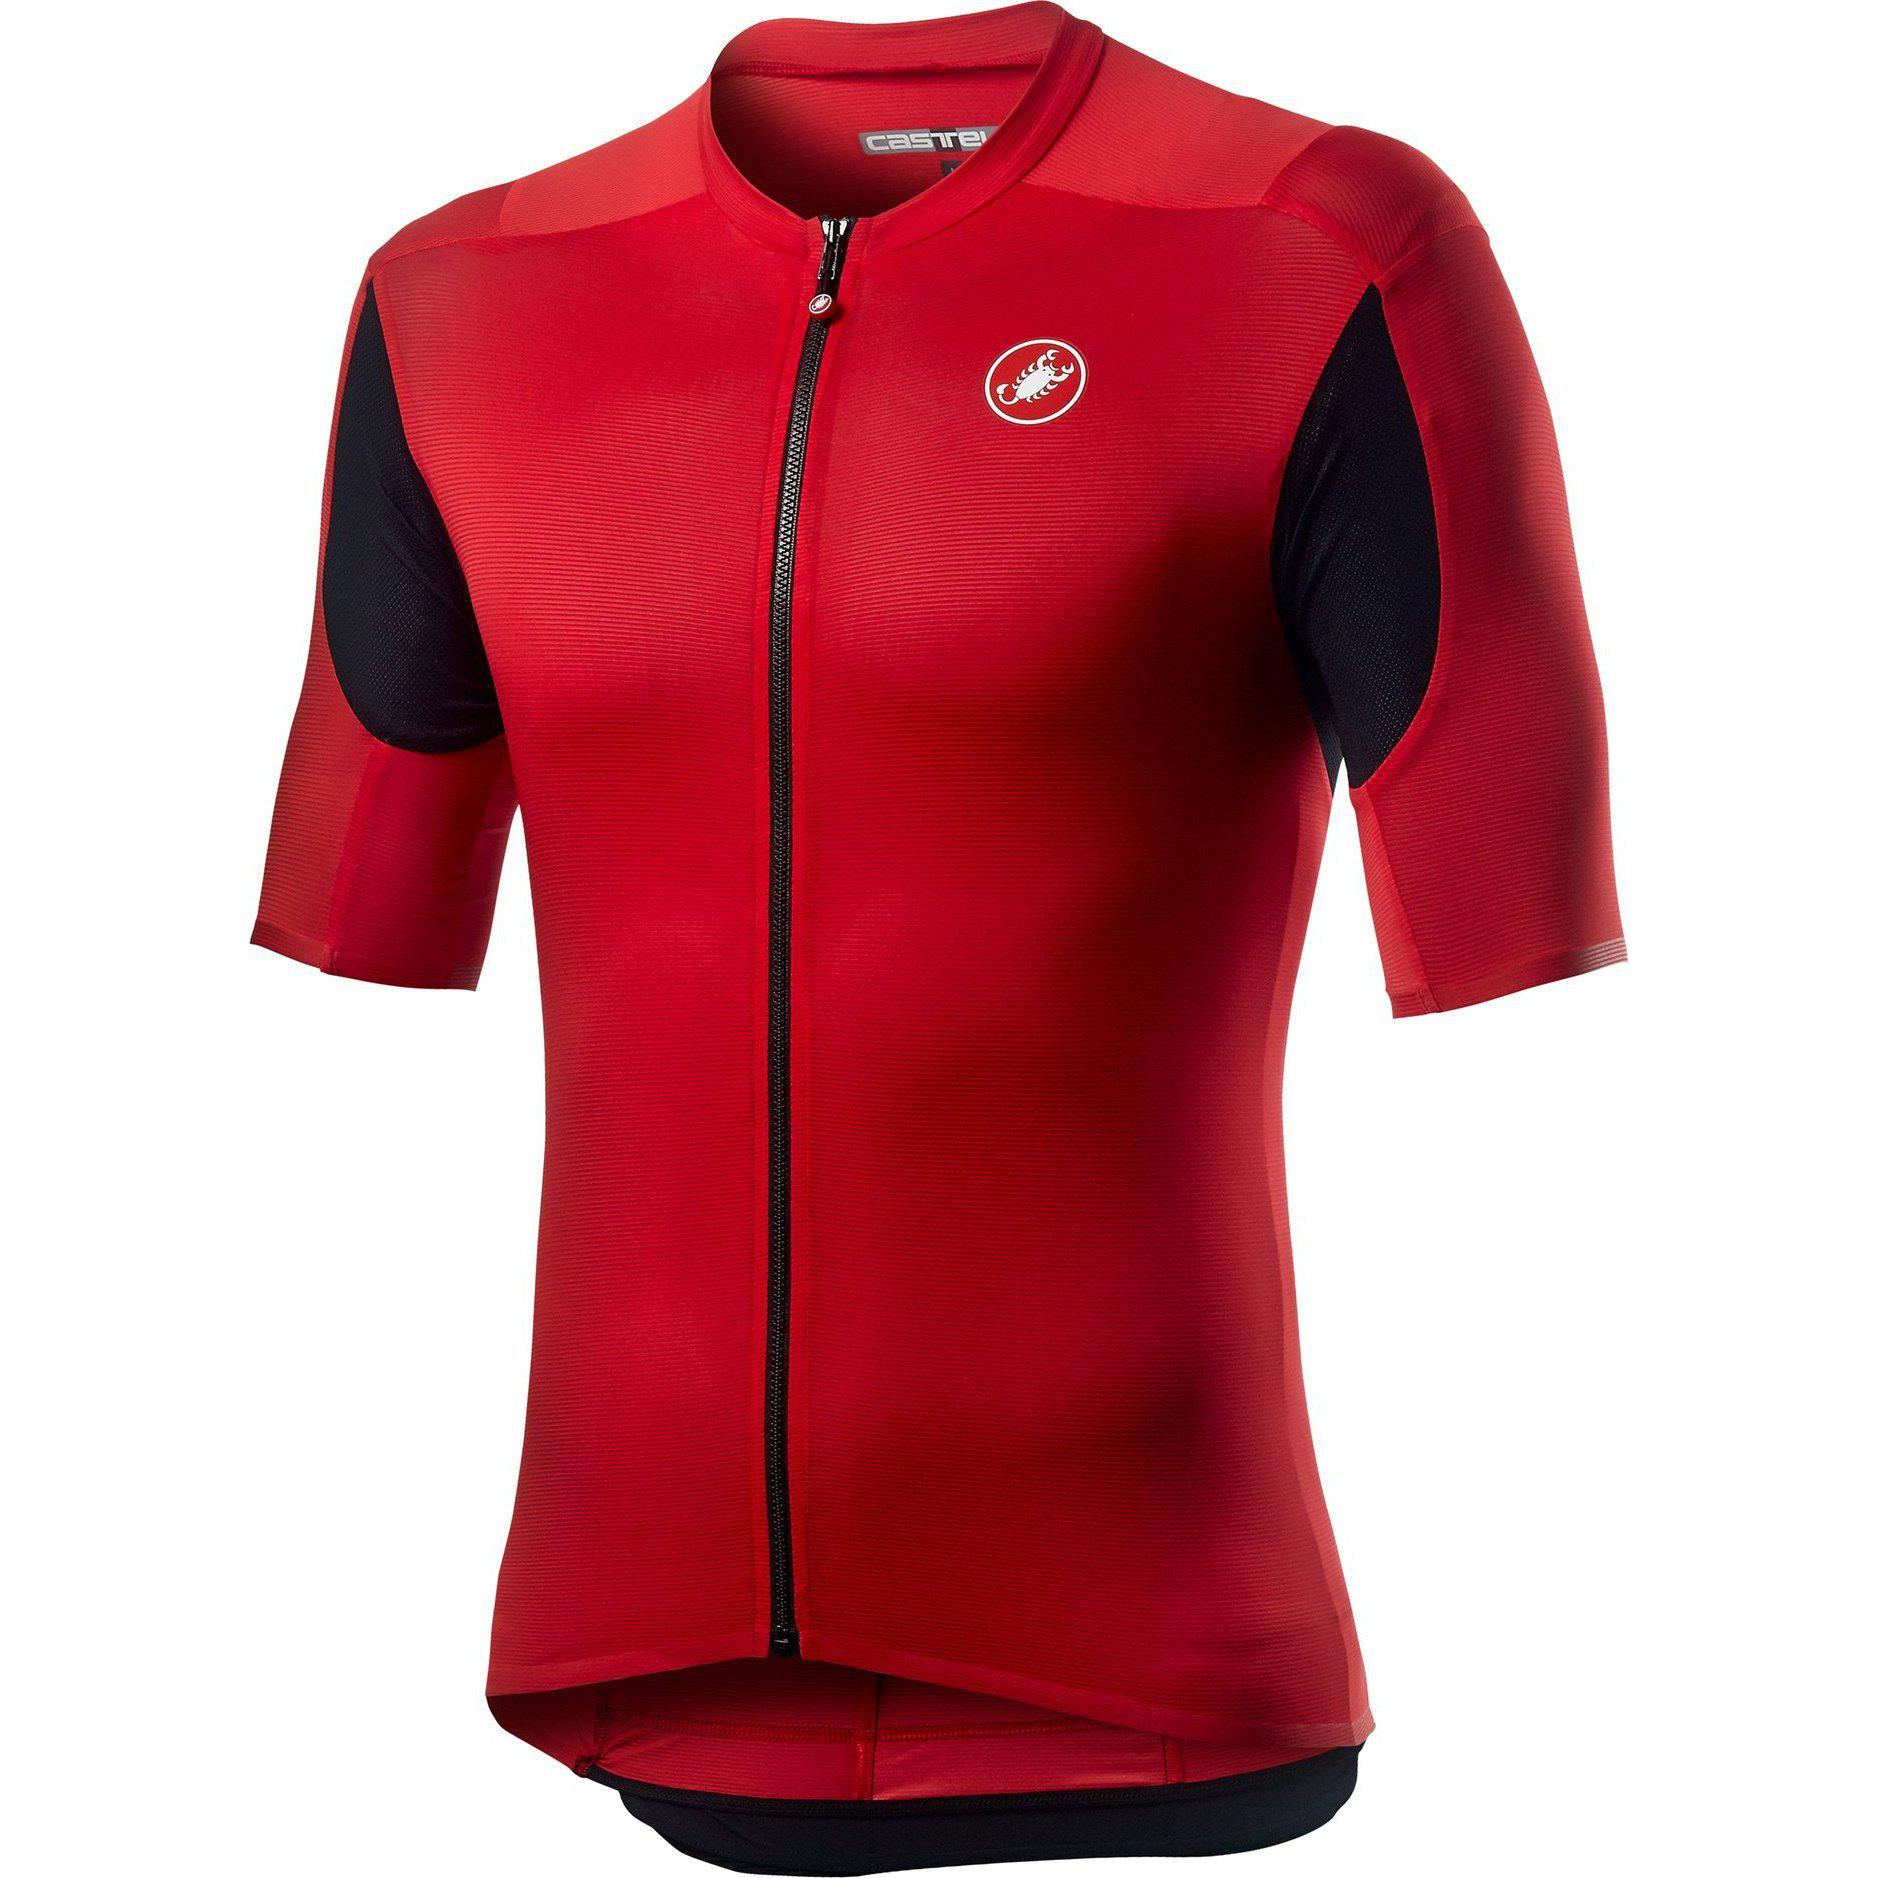 Castelli-Castelli Superleggera 2 Jersey-Red-XS-CS200170231-saddleback-elite-performance-cycling